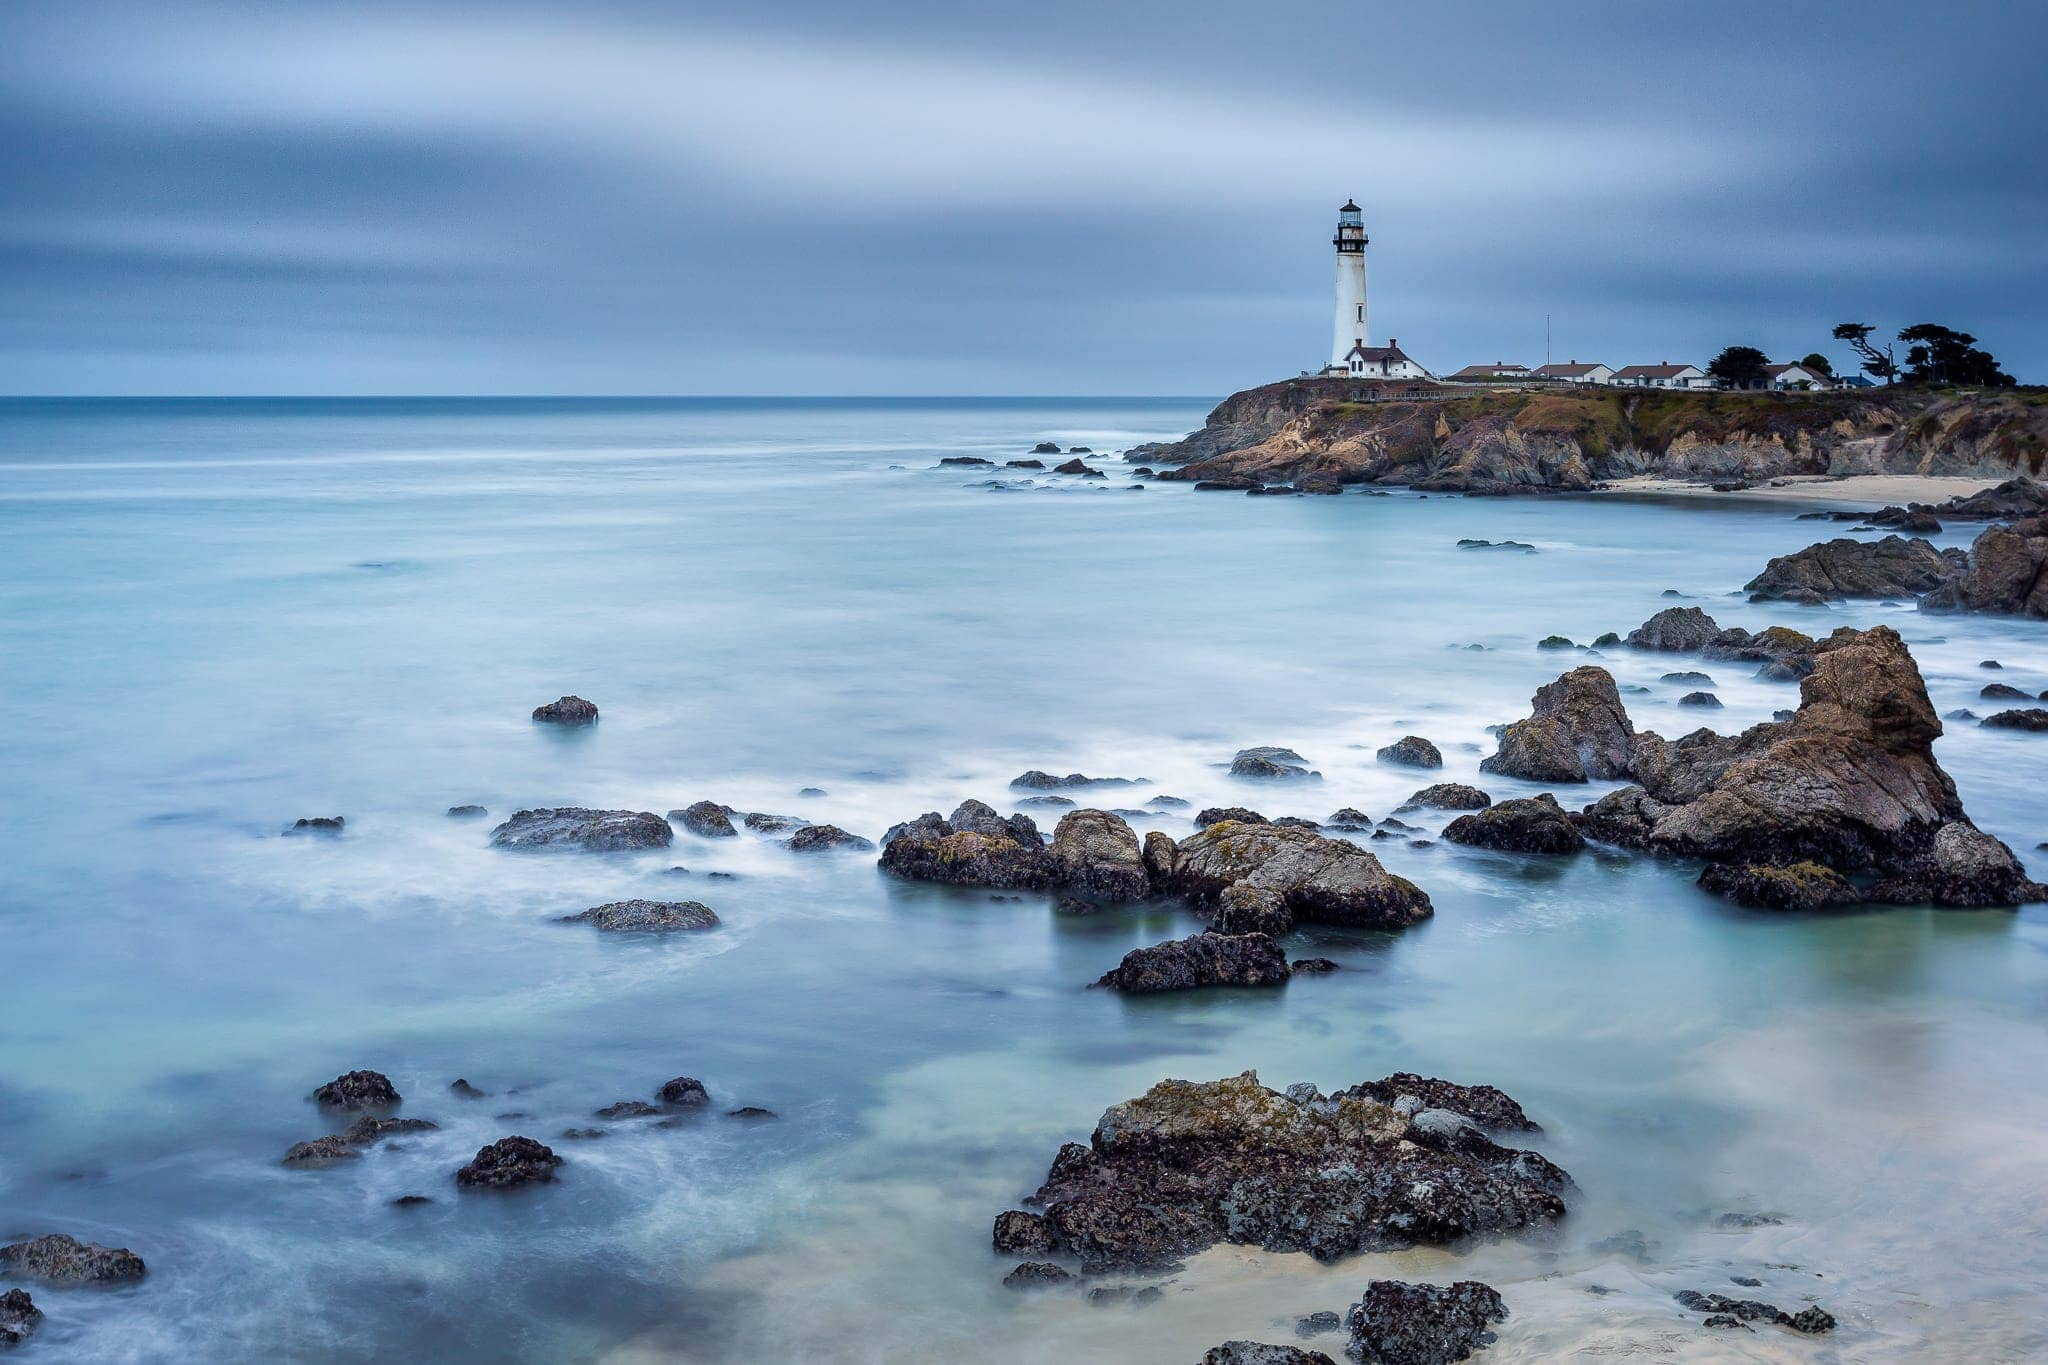 Francesco Gola Seascape Landscape Photography Long Exposure Pigeon Point USA California Lighthouse